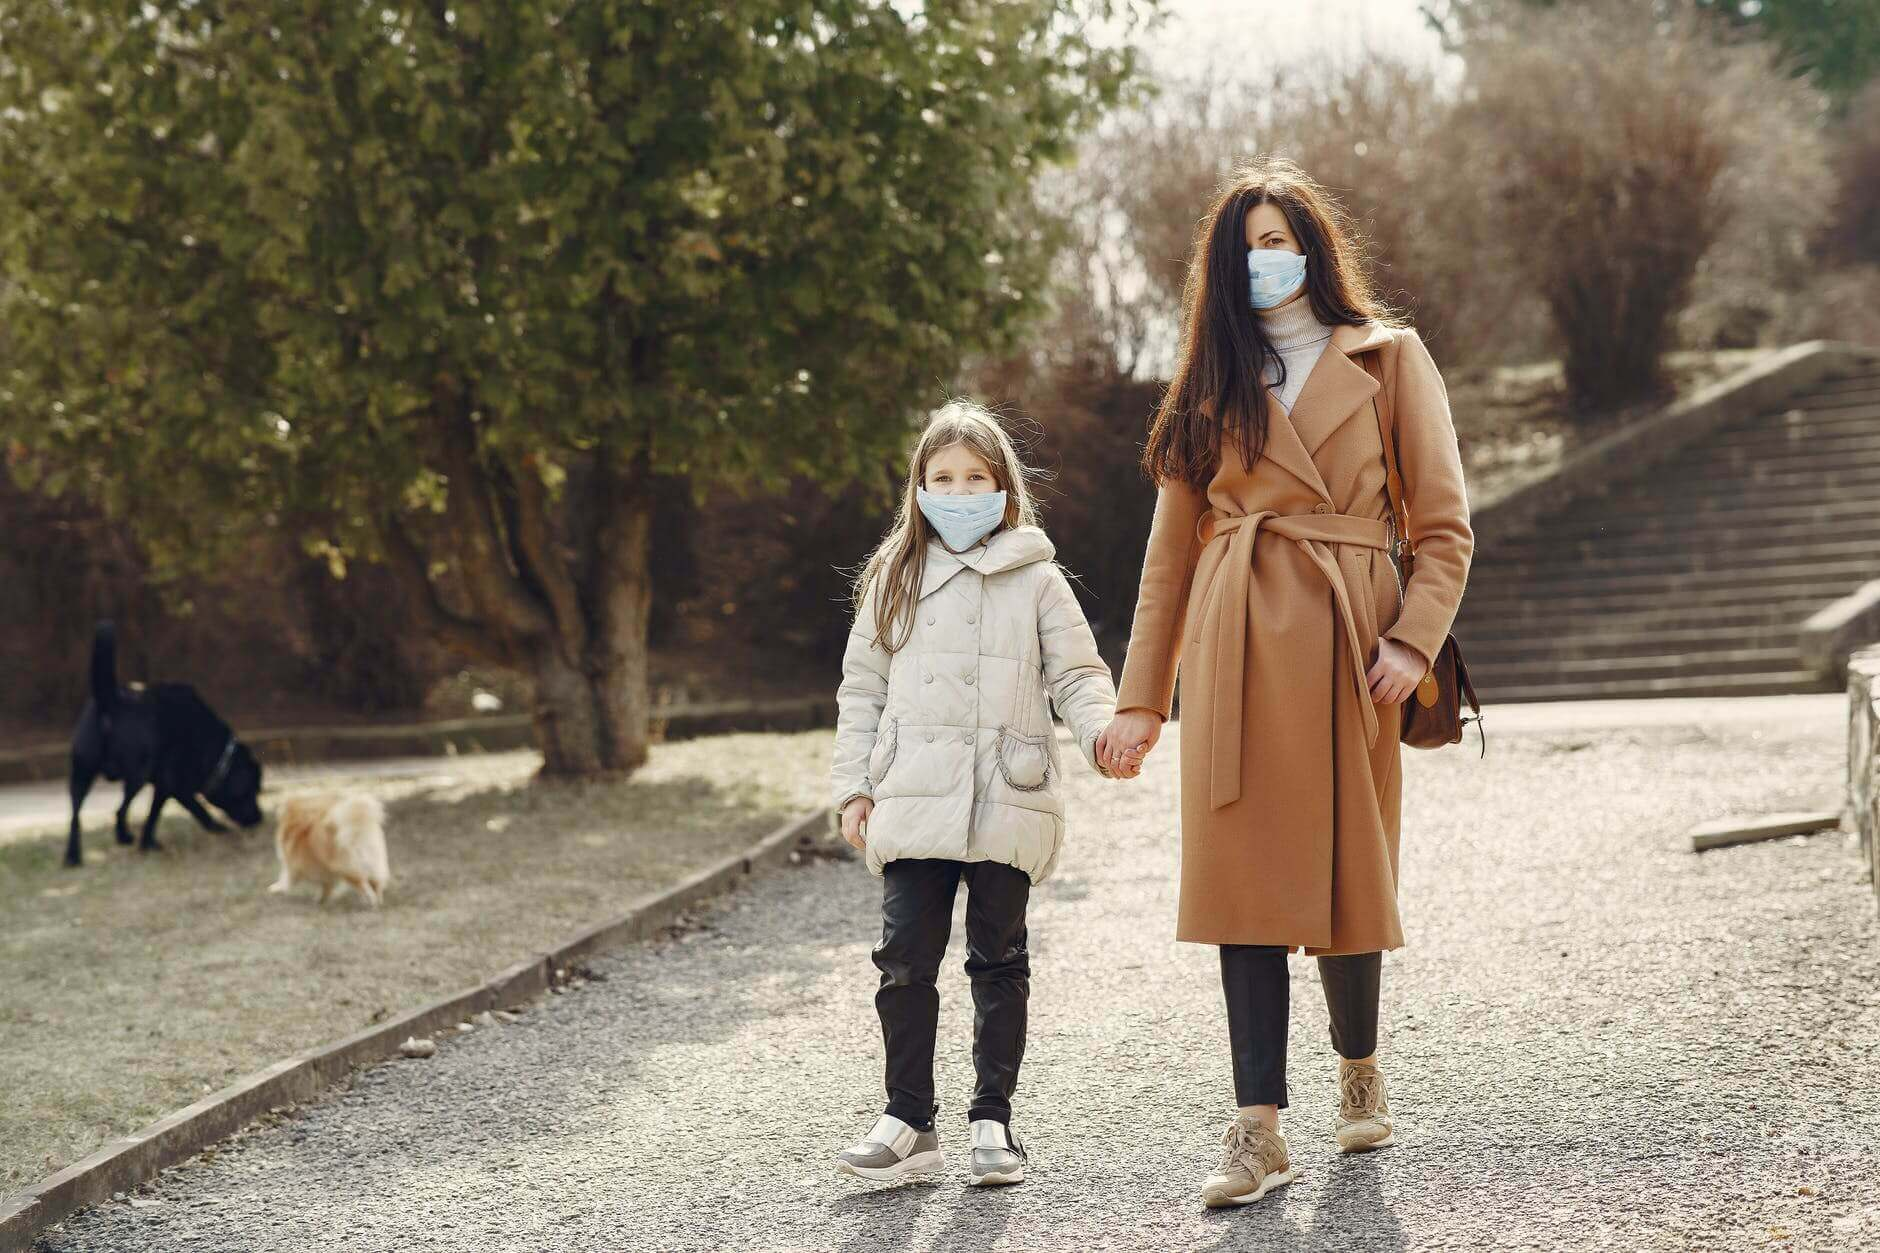 An image of a woman and her daughter walking.